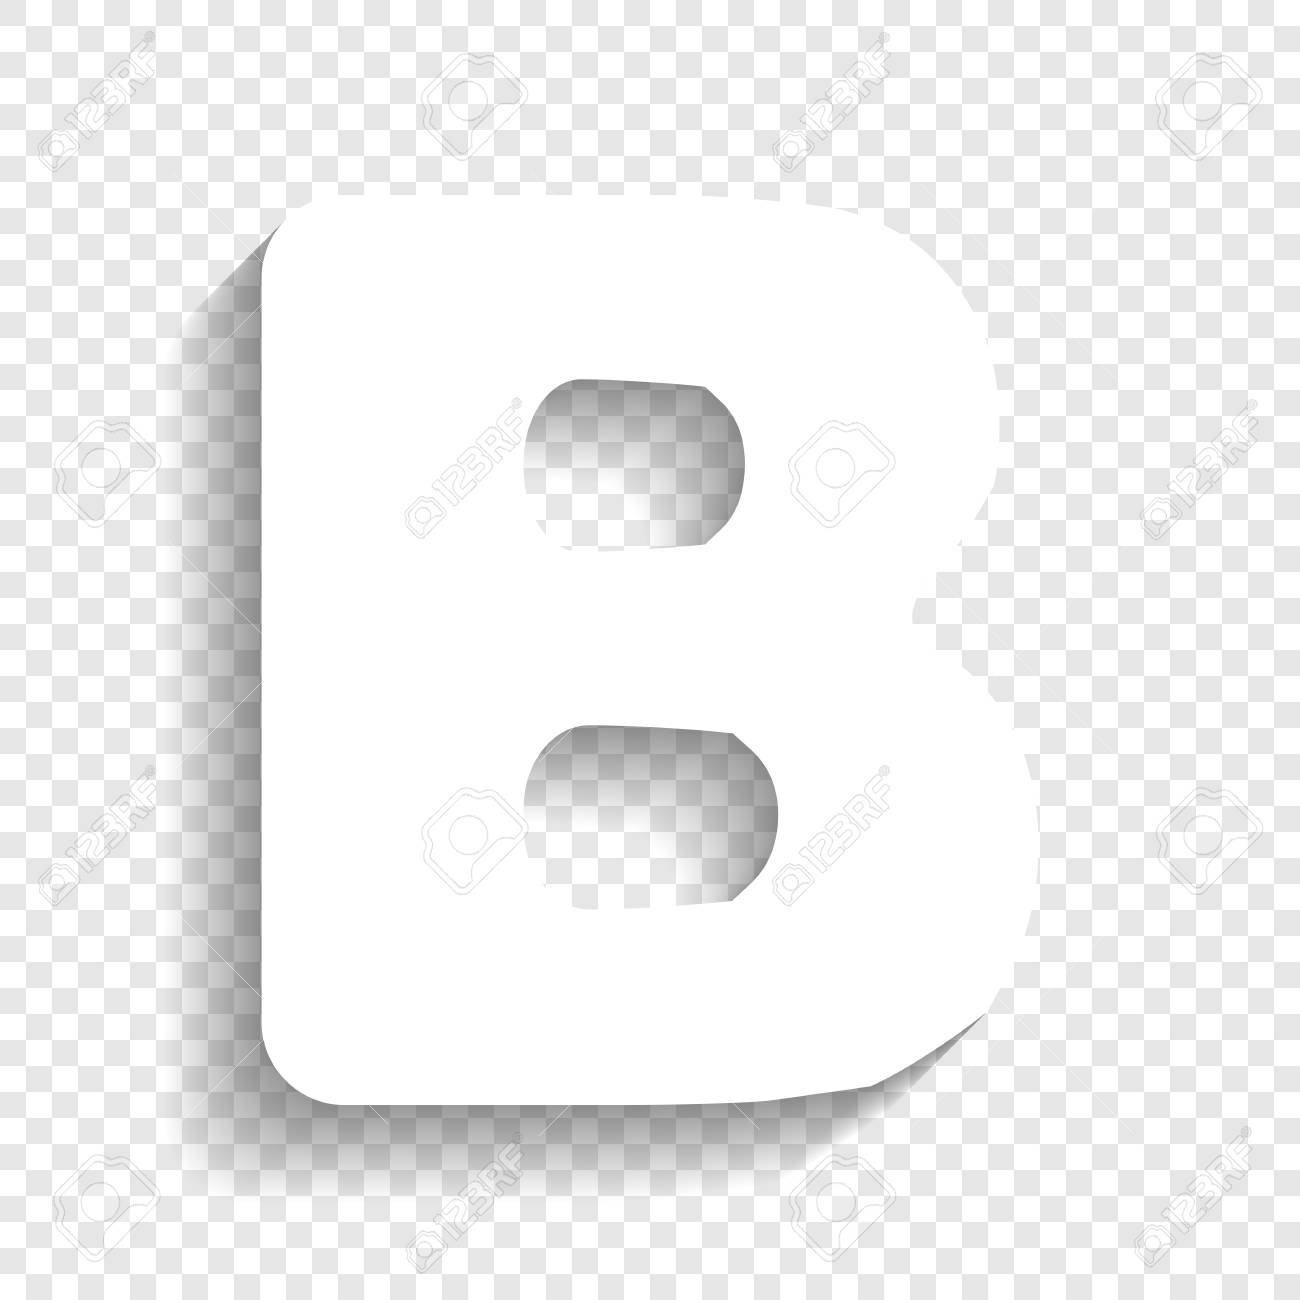 letter b sign design template element vector white icon with soft shadow on transparent